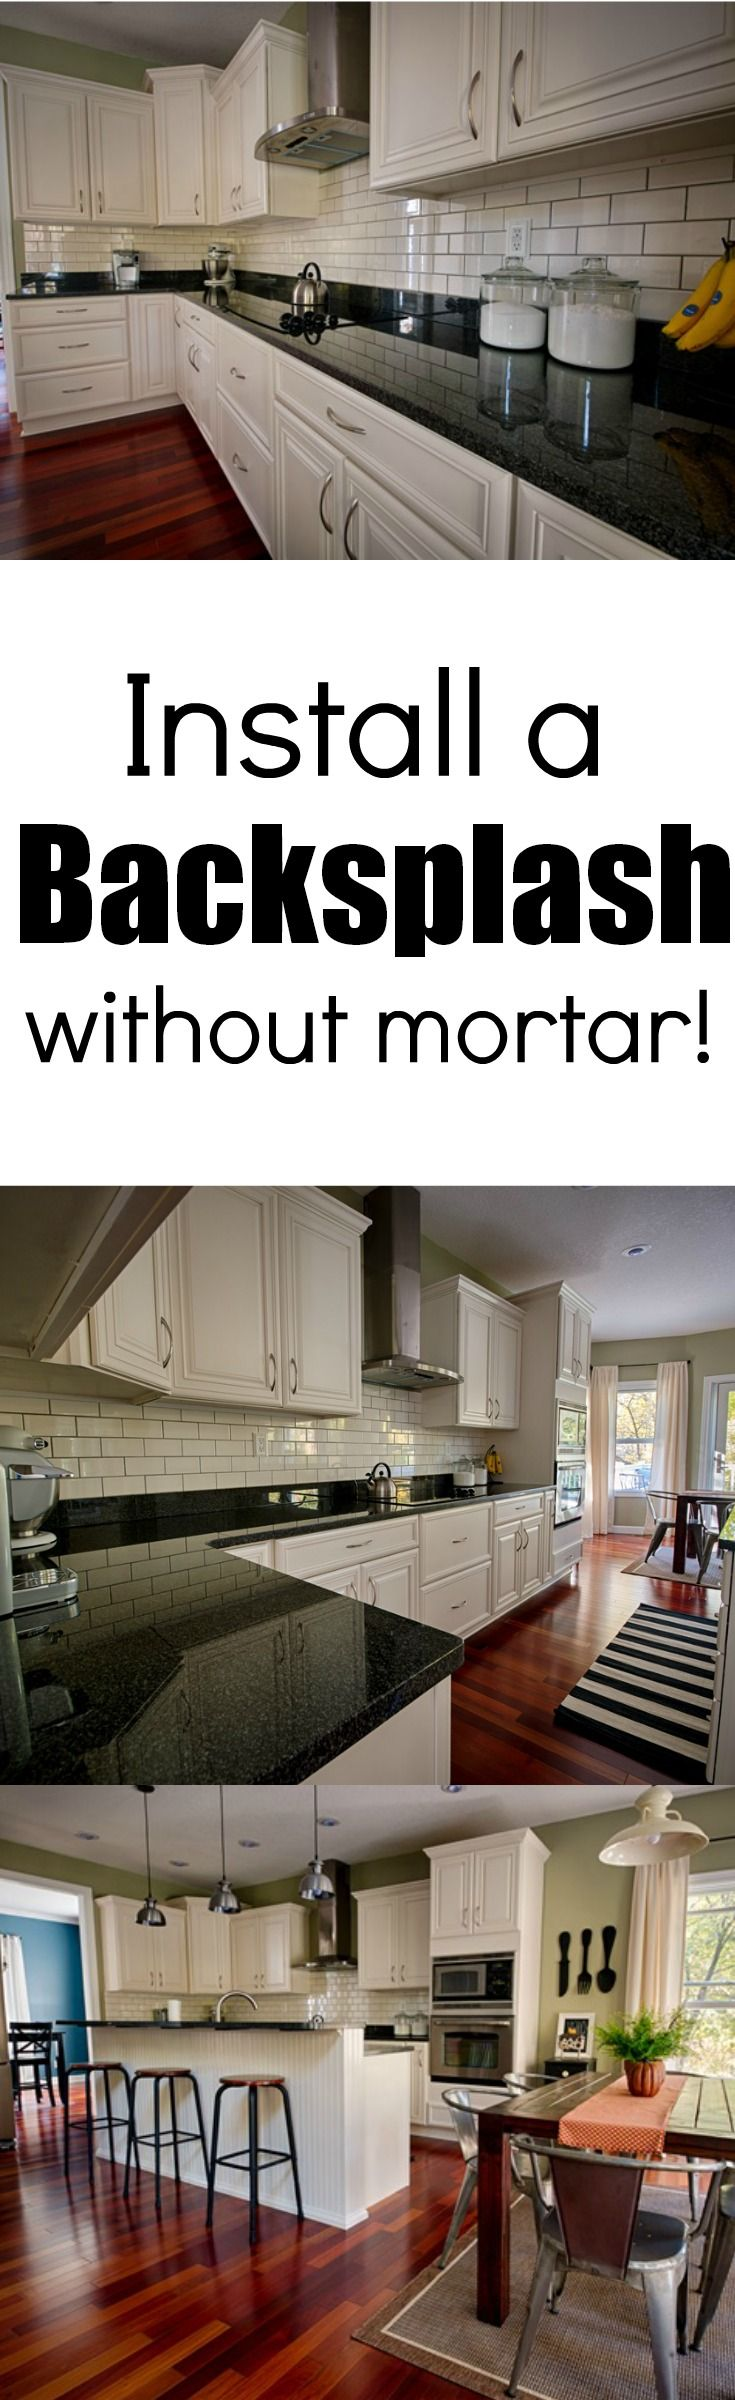 air jordan 5 2014 Install a backsplash without mortar  Learn how